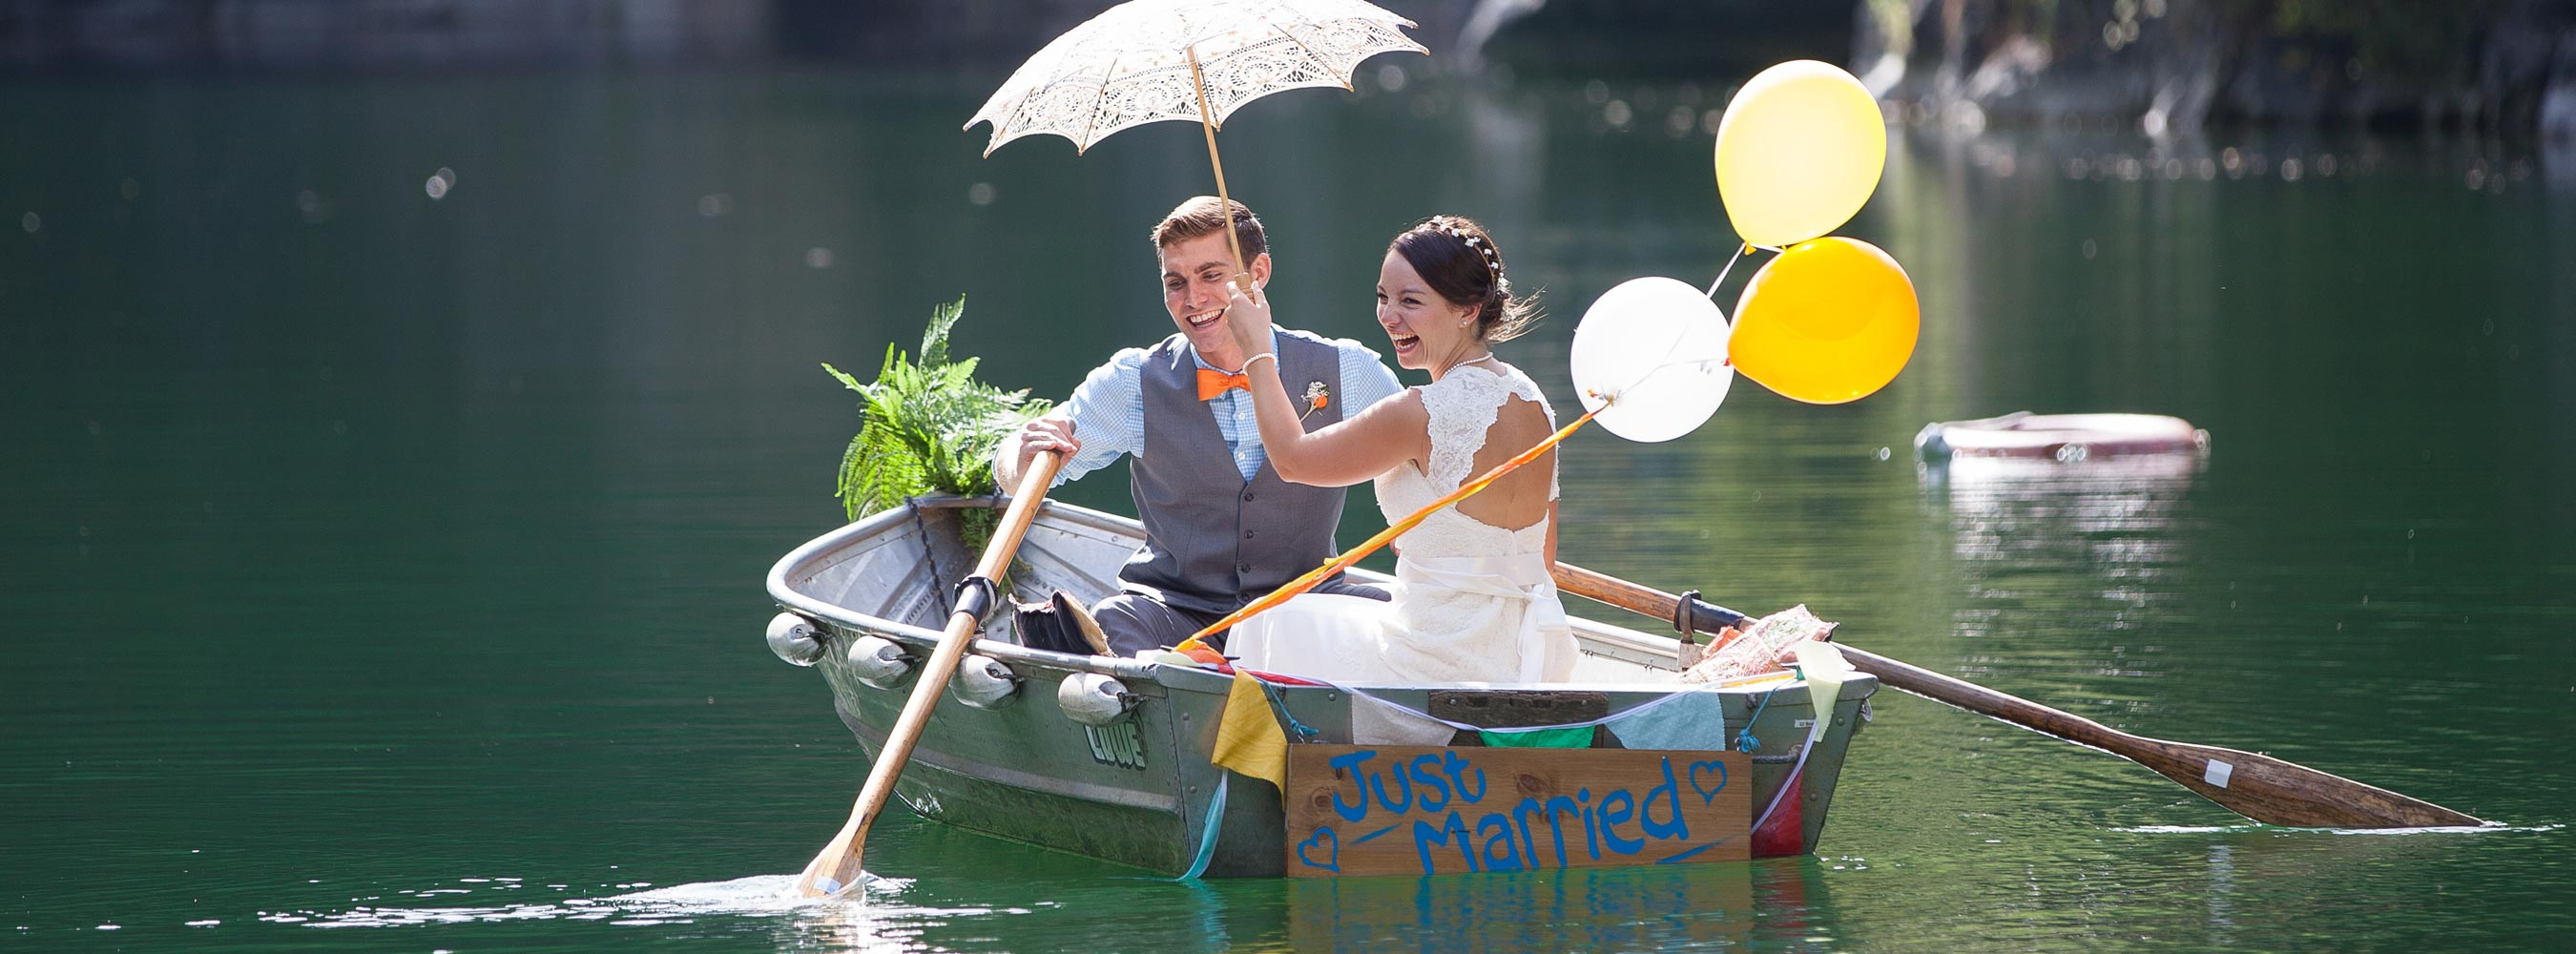 Bride and Groom in a boat at Lake with balloons